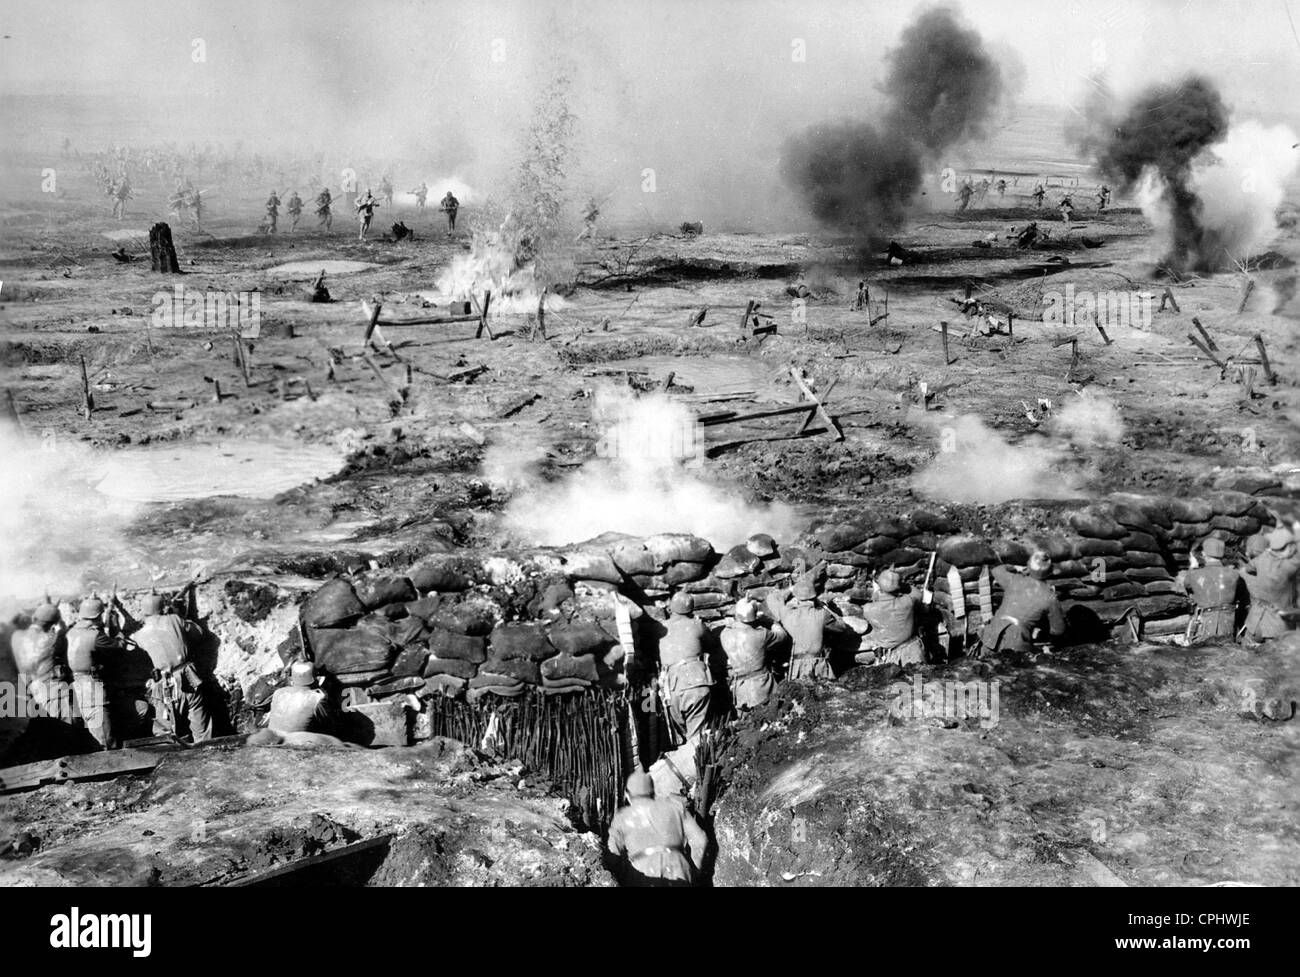 German soldiers on the Western front from the film 'All Quiet on the Western Front', 1930 - Stock Image